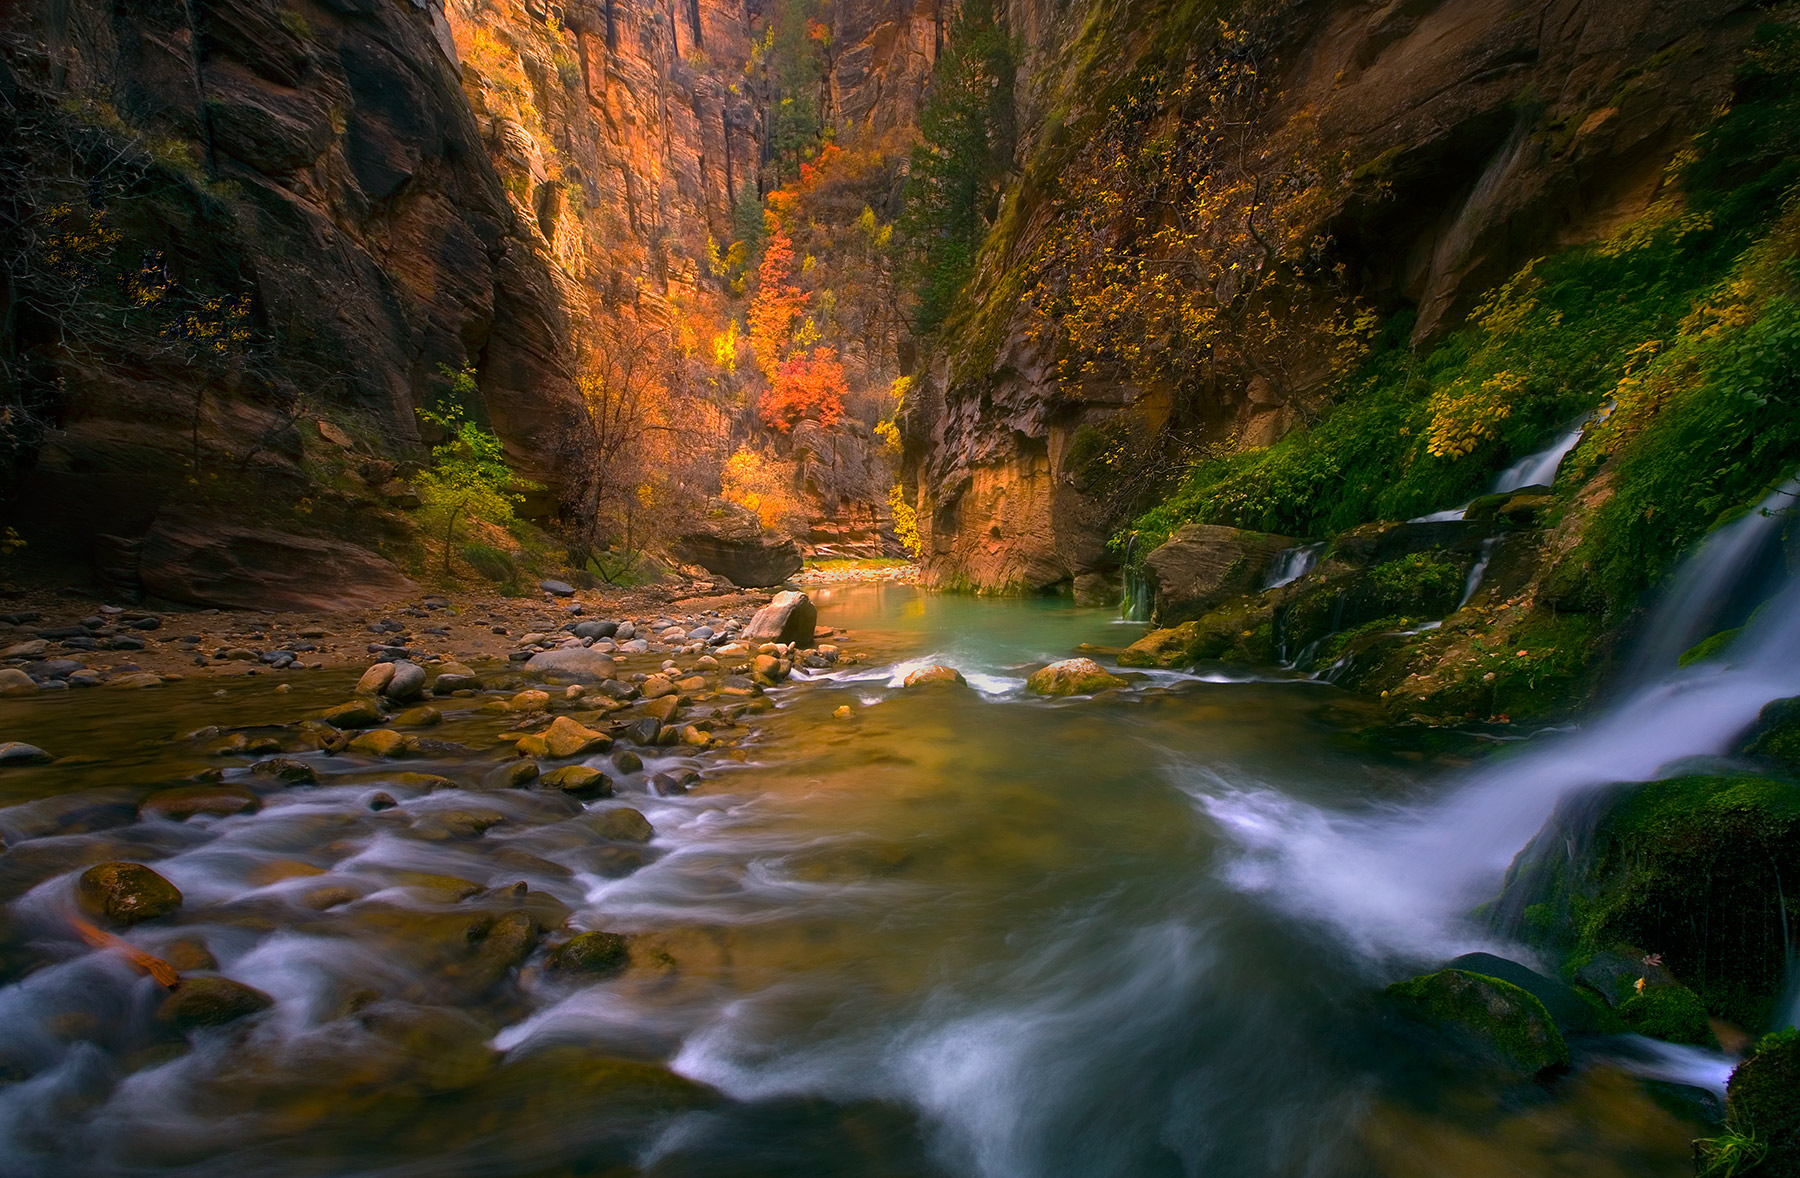 backpacking, zion, virgin, big spring, autumn, photo